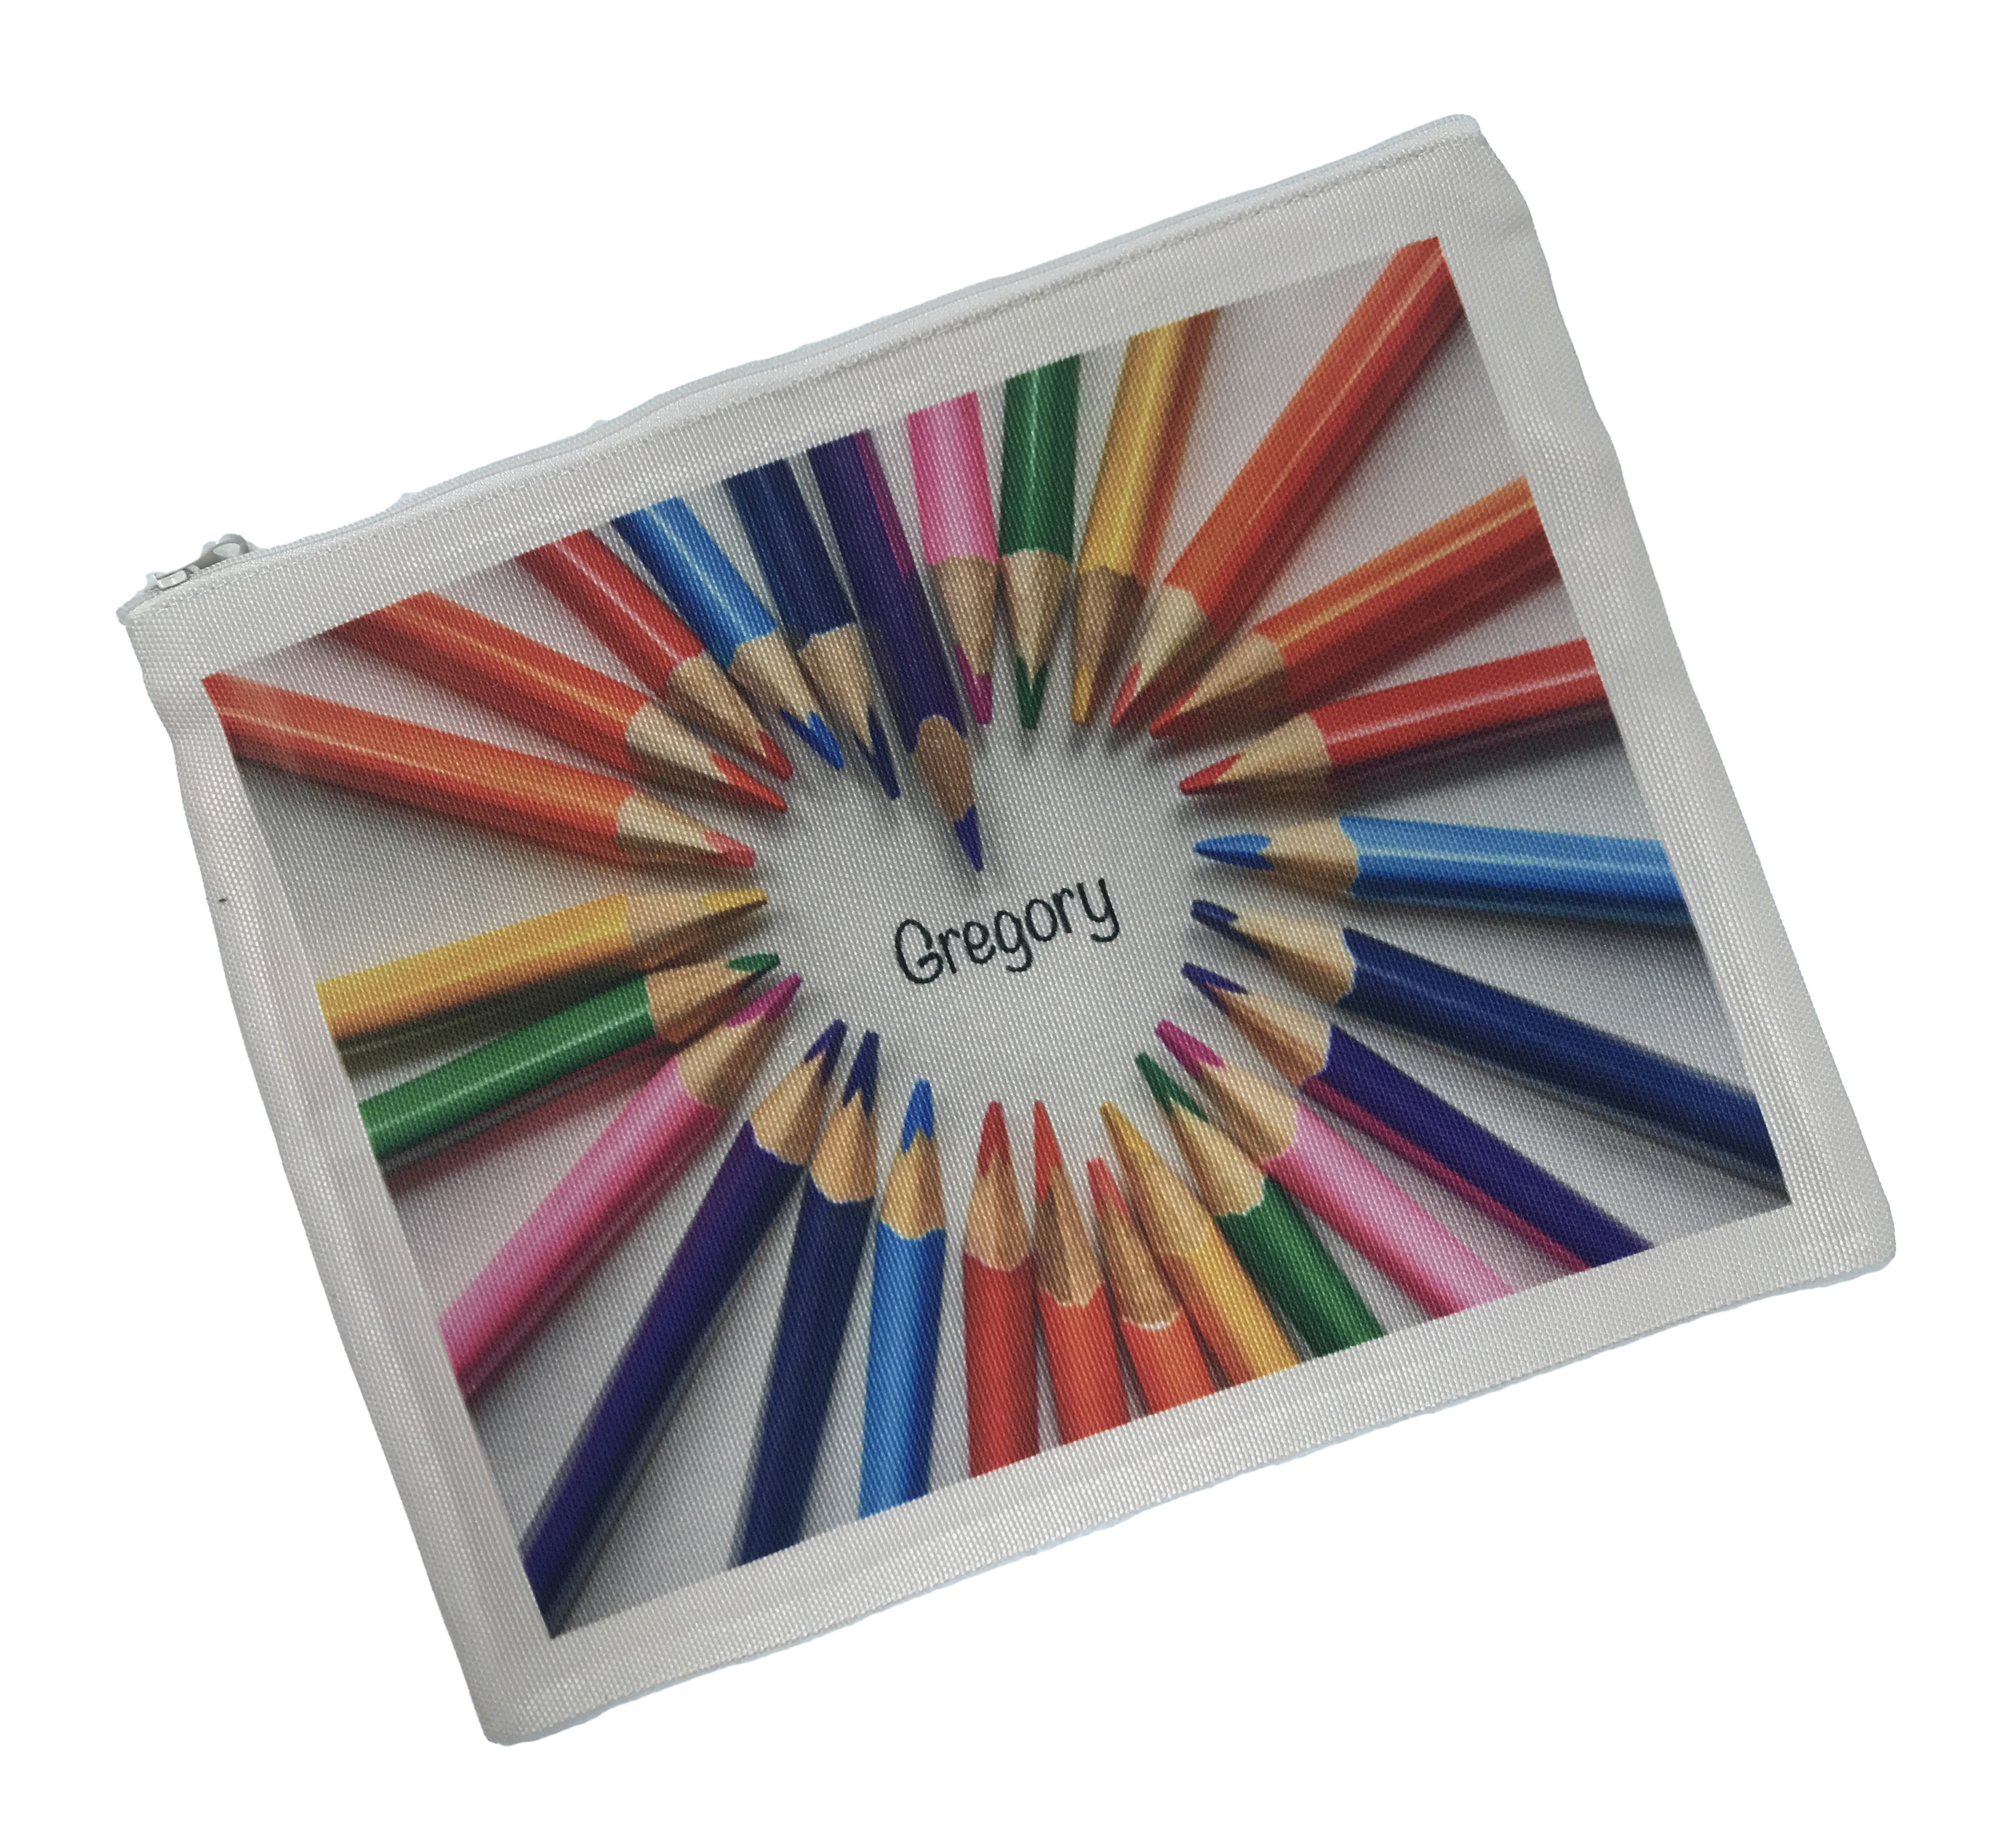 personalised pencil case add your own pictures text storage bags